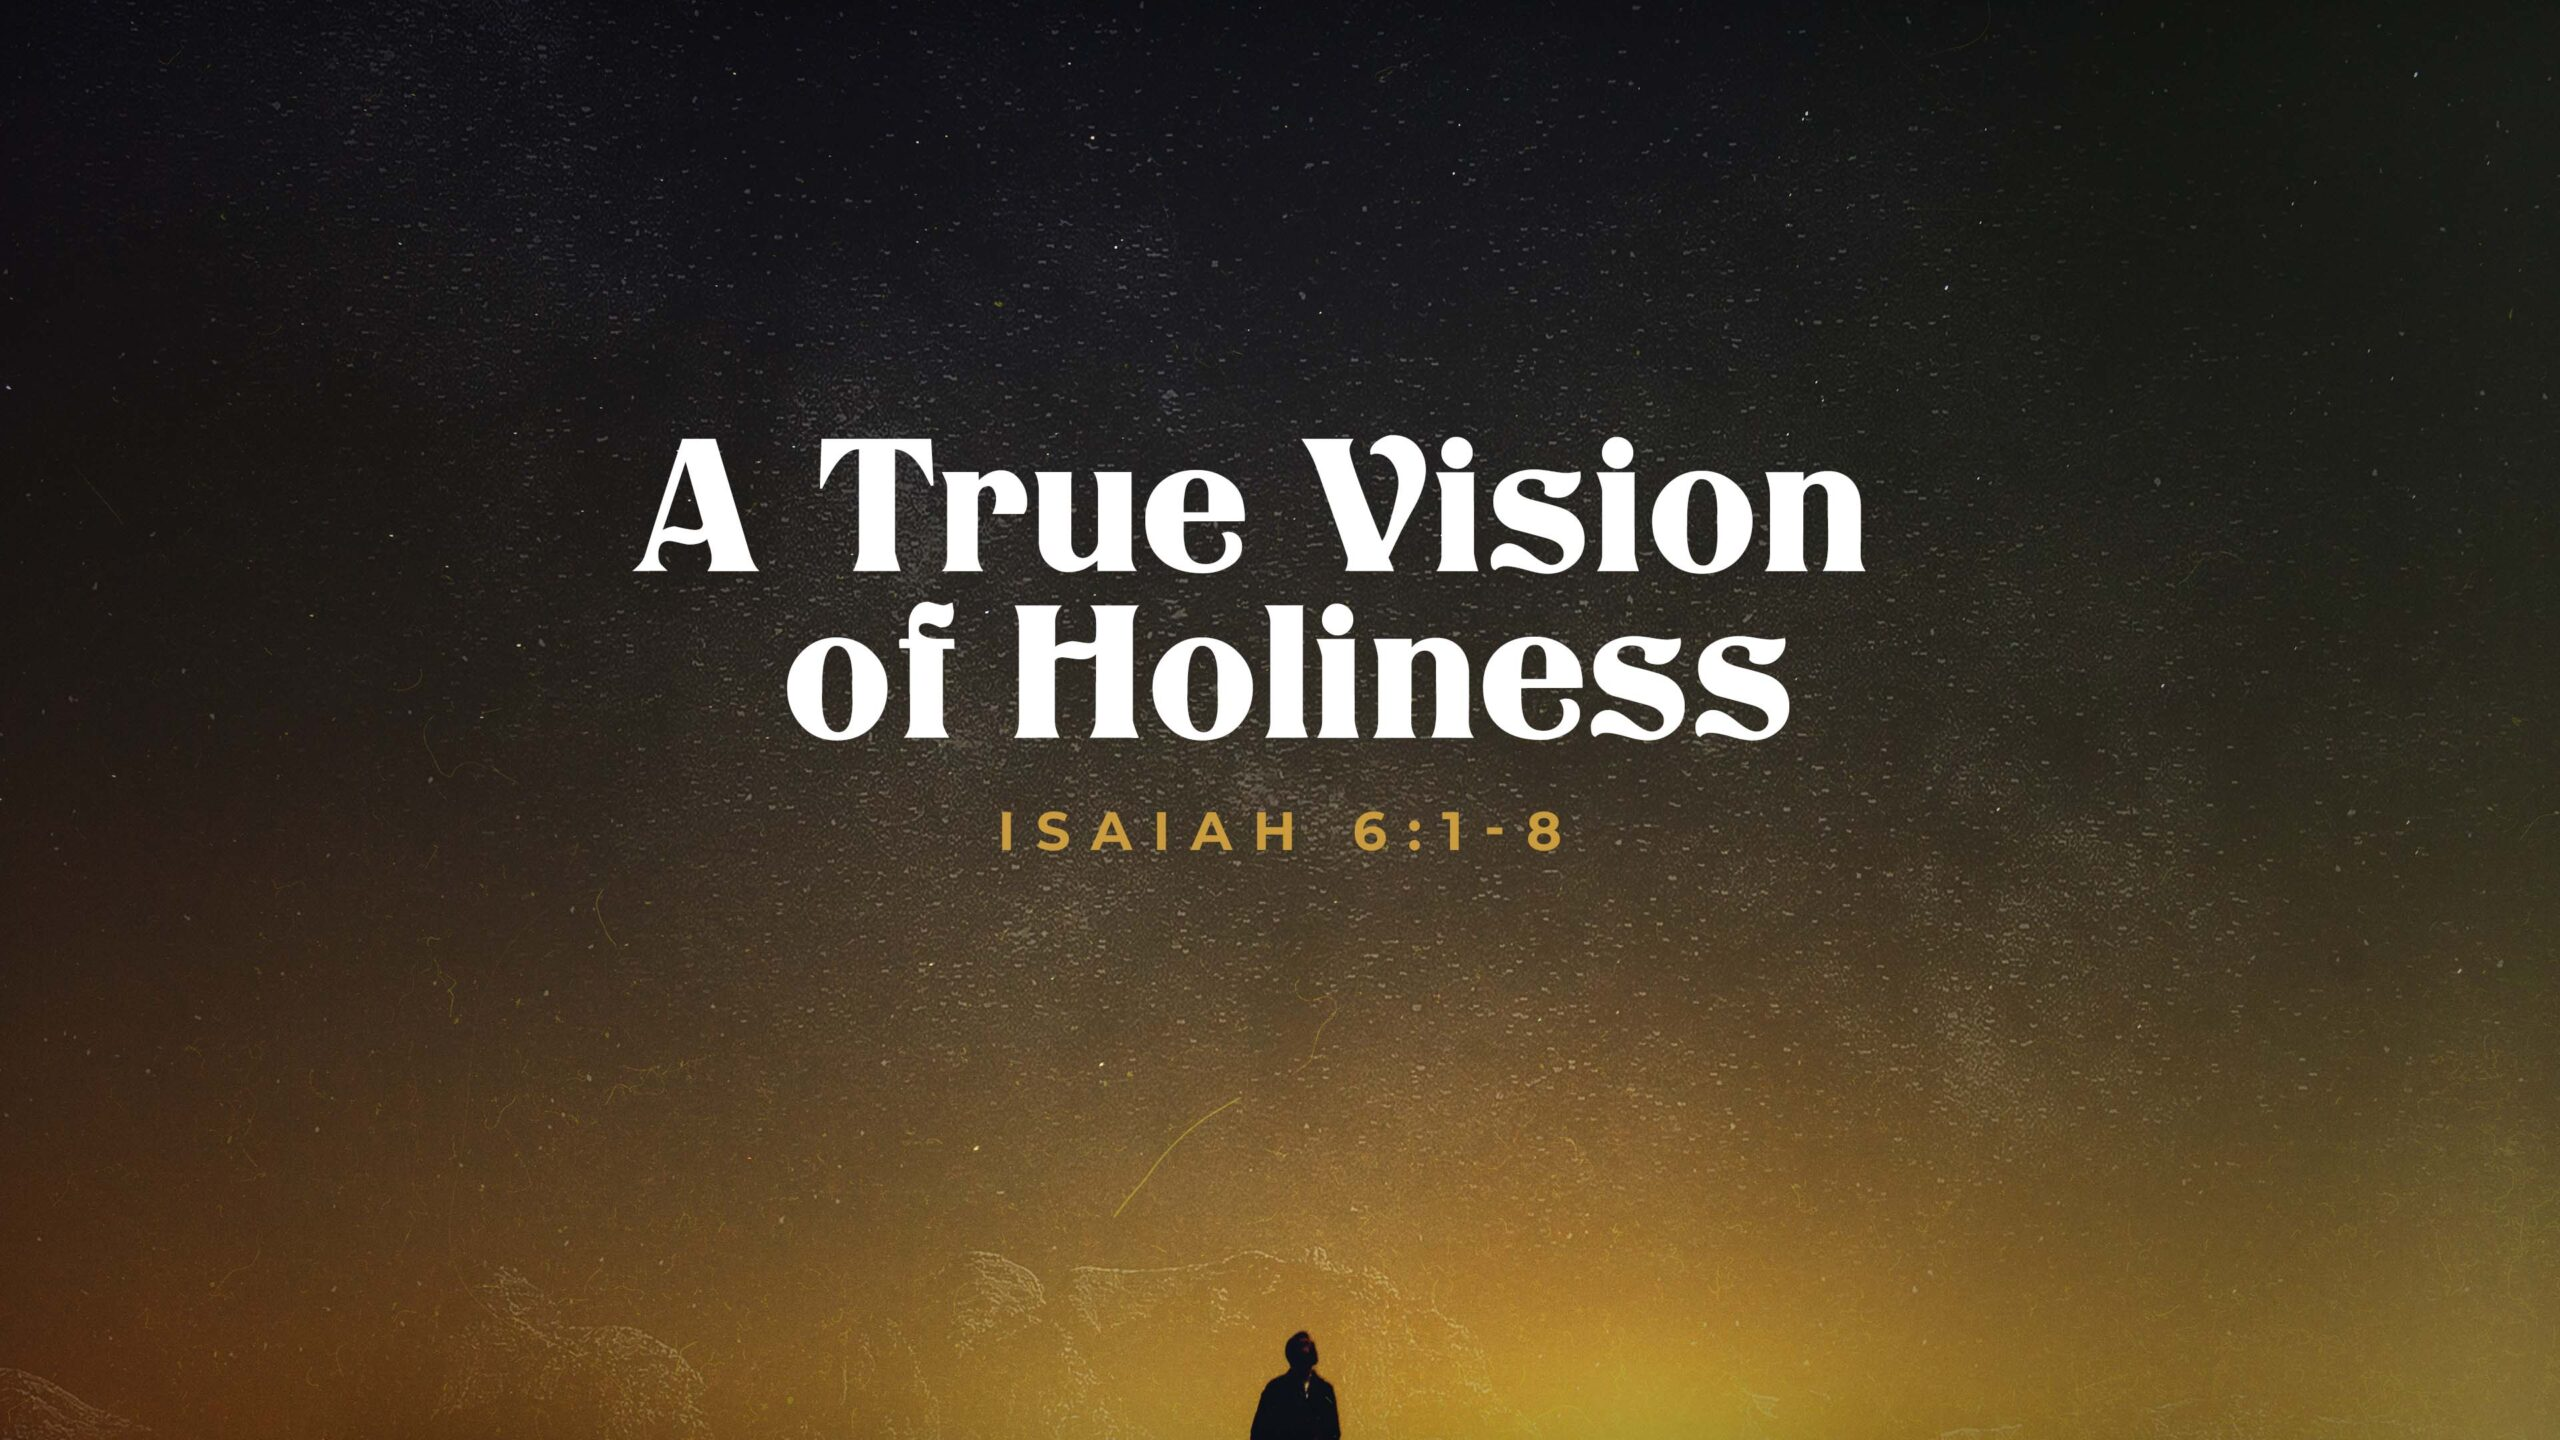 A Vision of Holiness